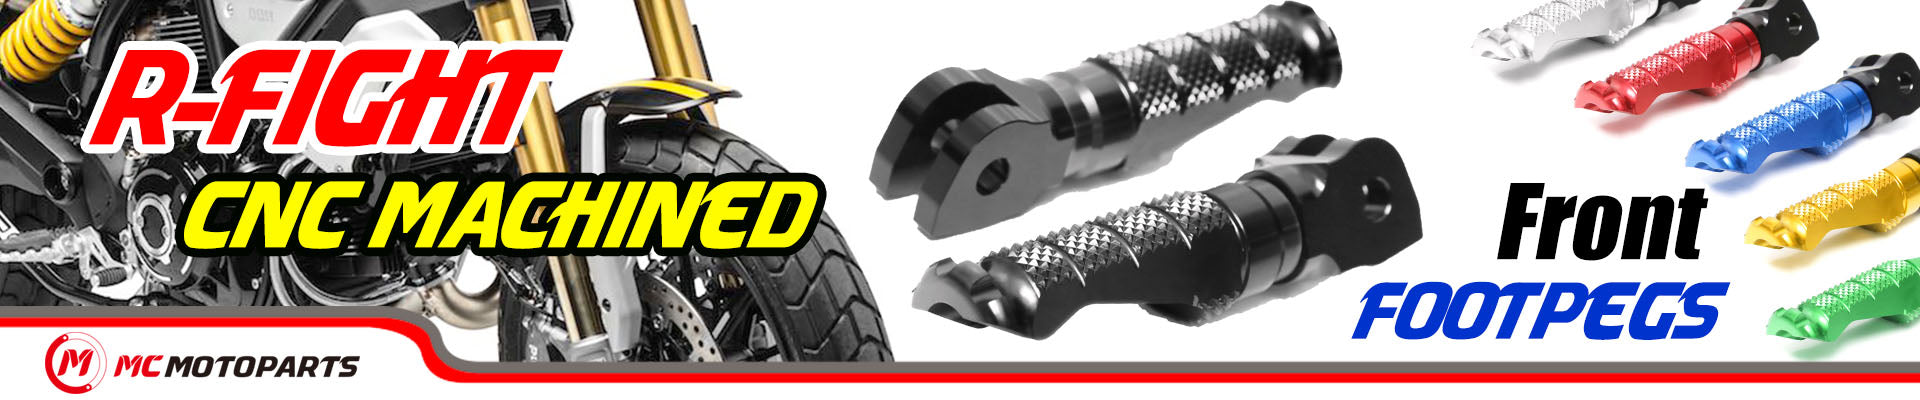 MC Motoparts R-Fight CNC Foot pegs